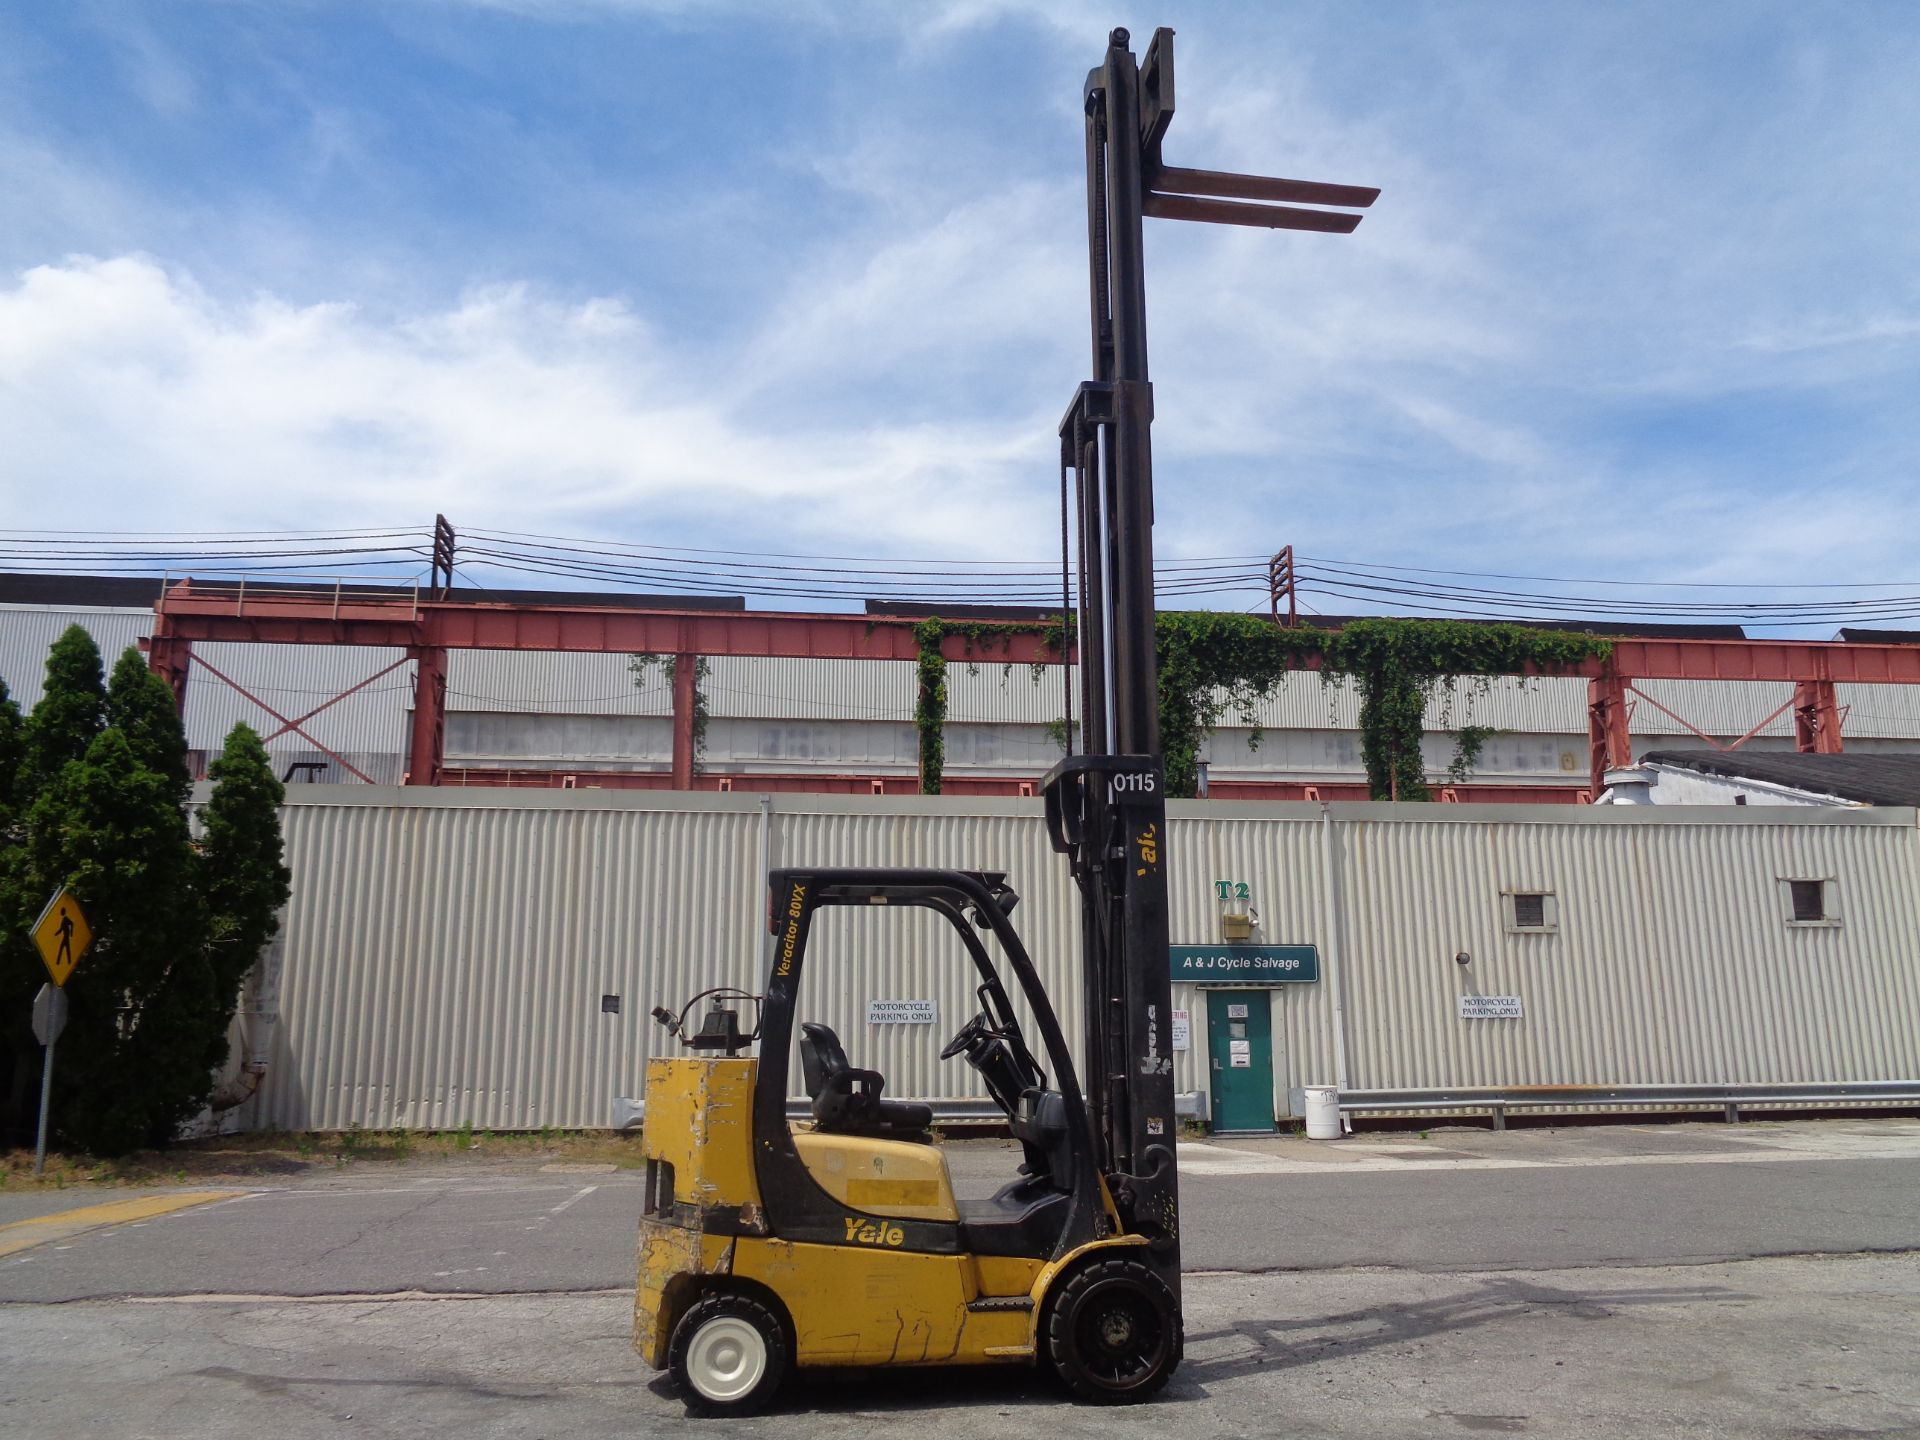 Yale GC080VXNGSE107.6 8,000lb Forklift - Image 14 of 18